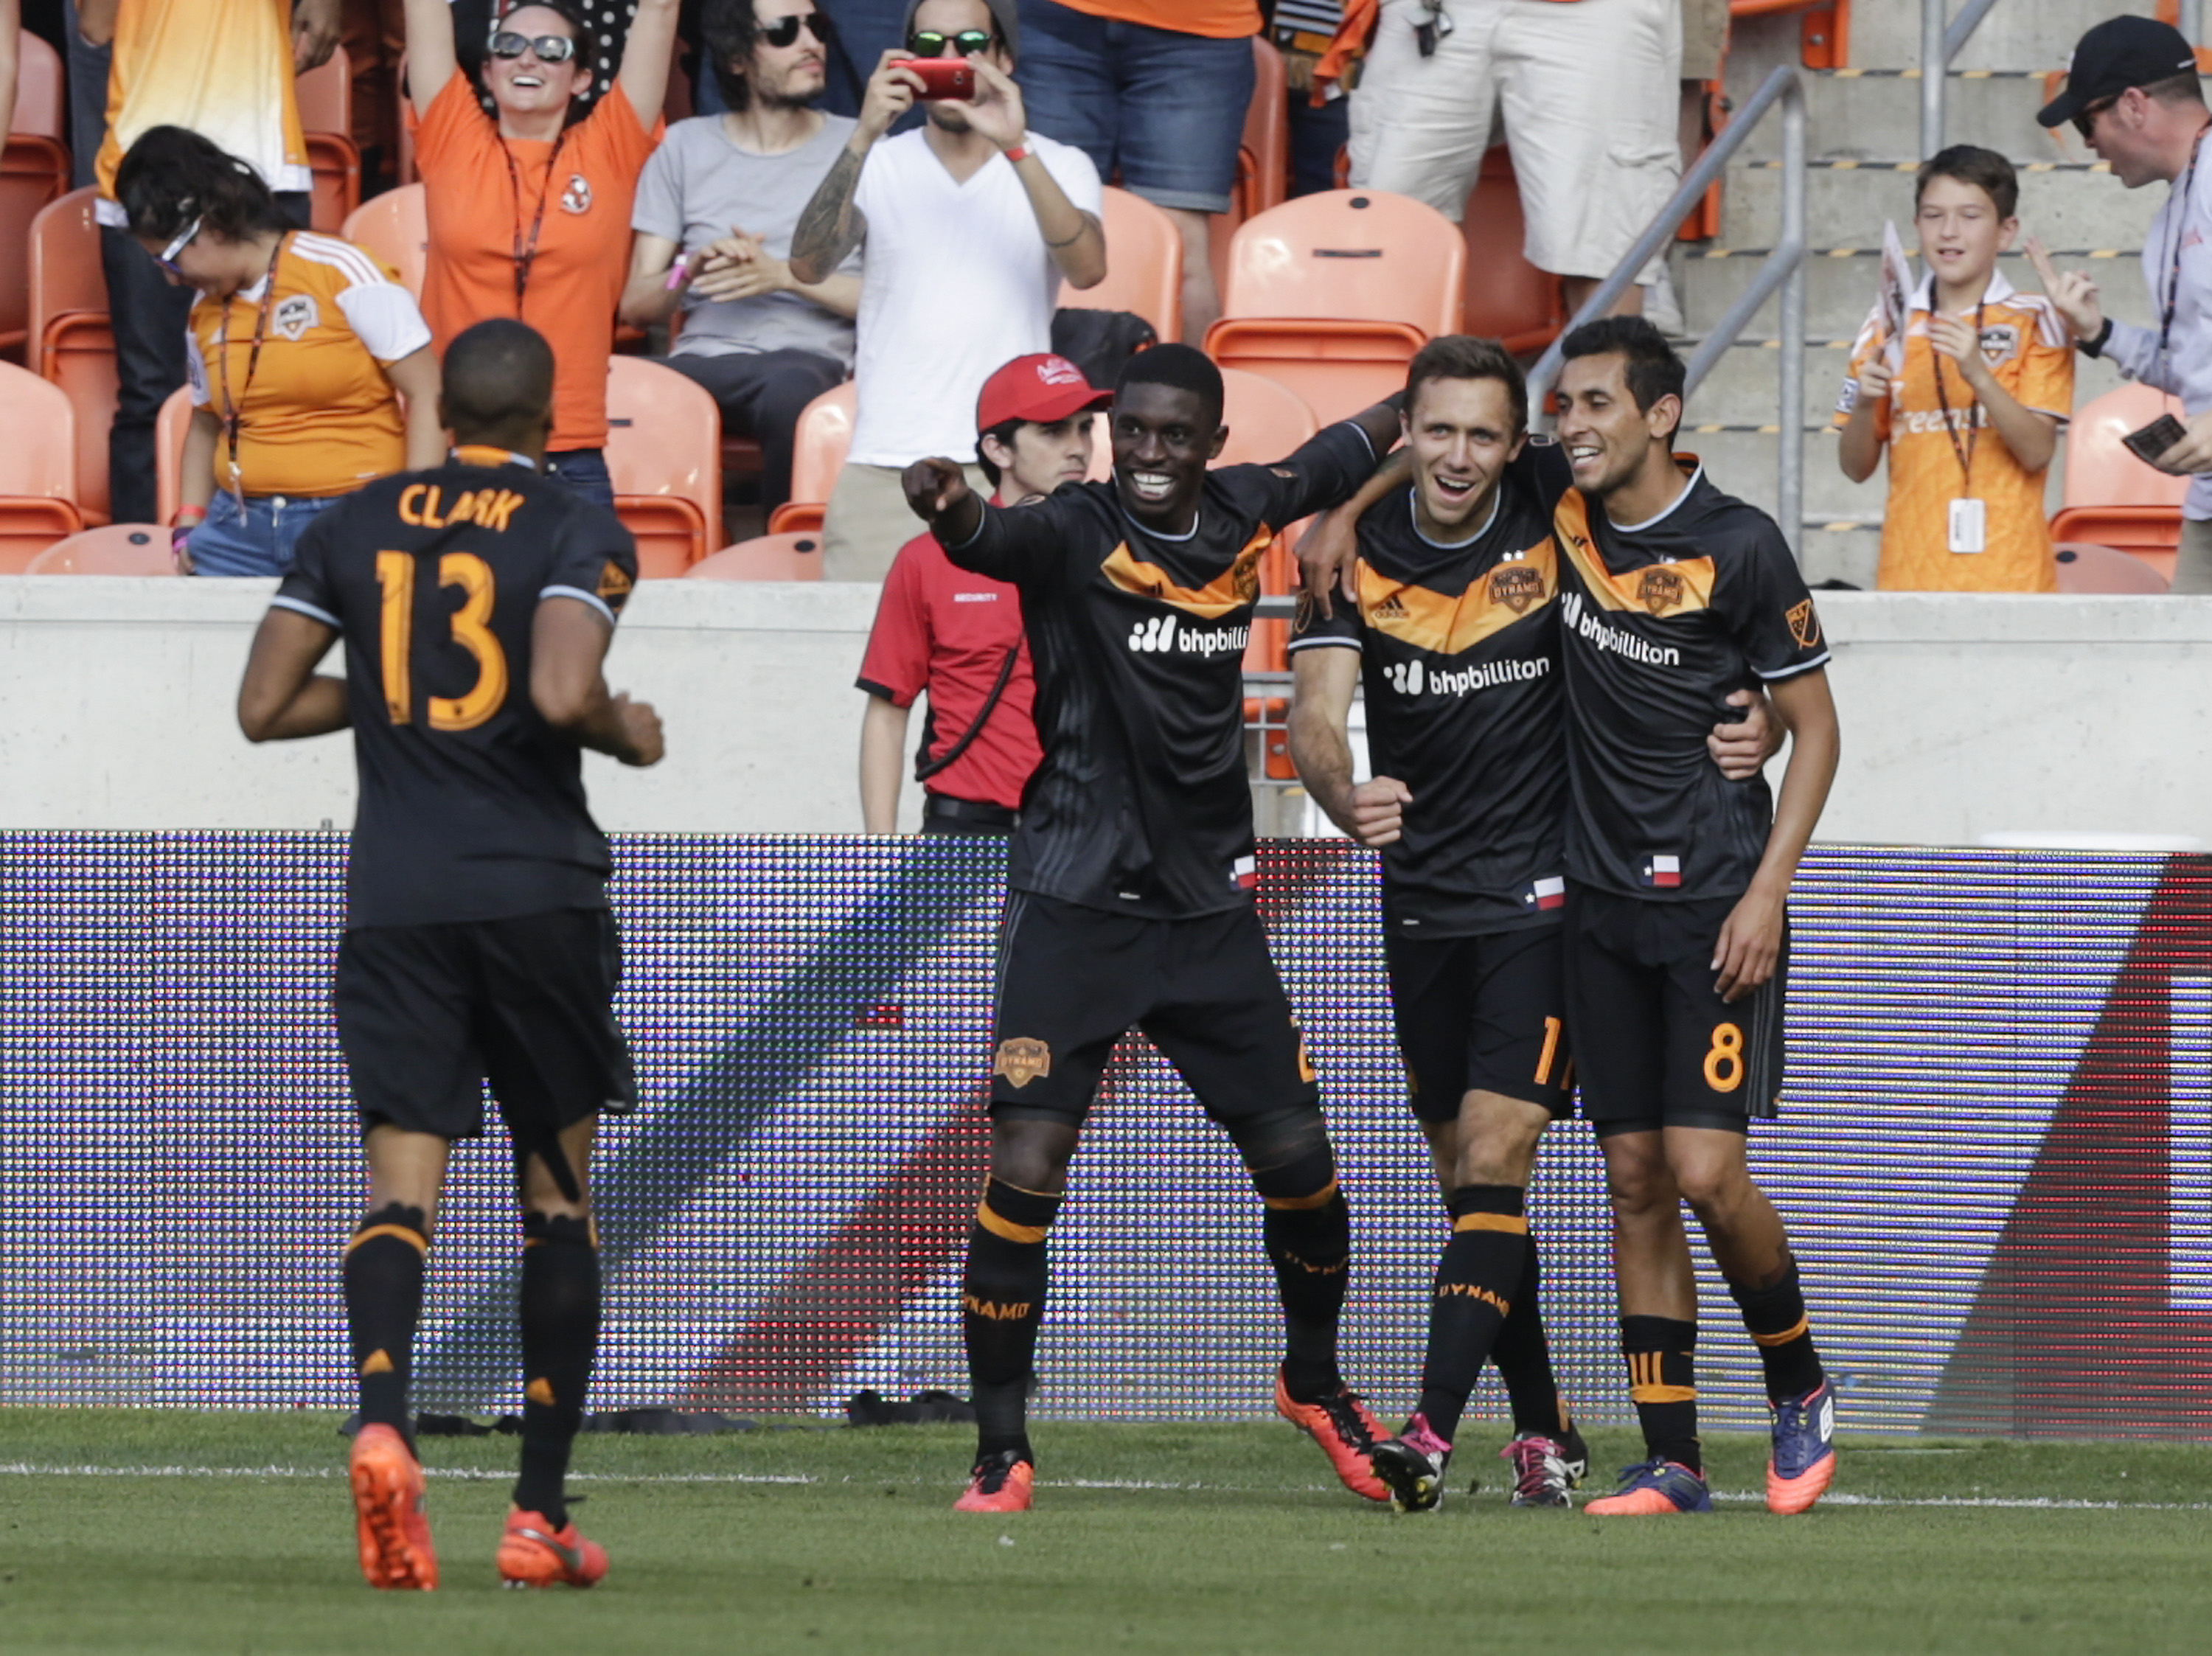 Houston Dynamo: Cristian Maidana's absence a crisis